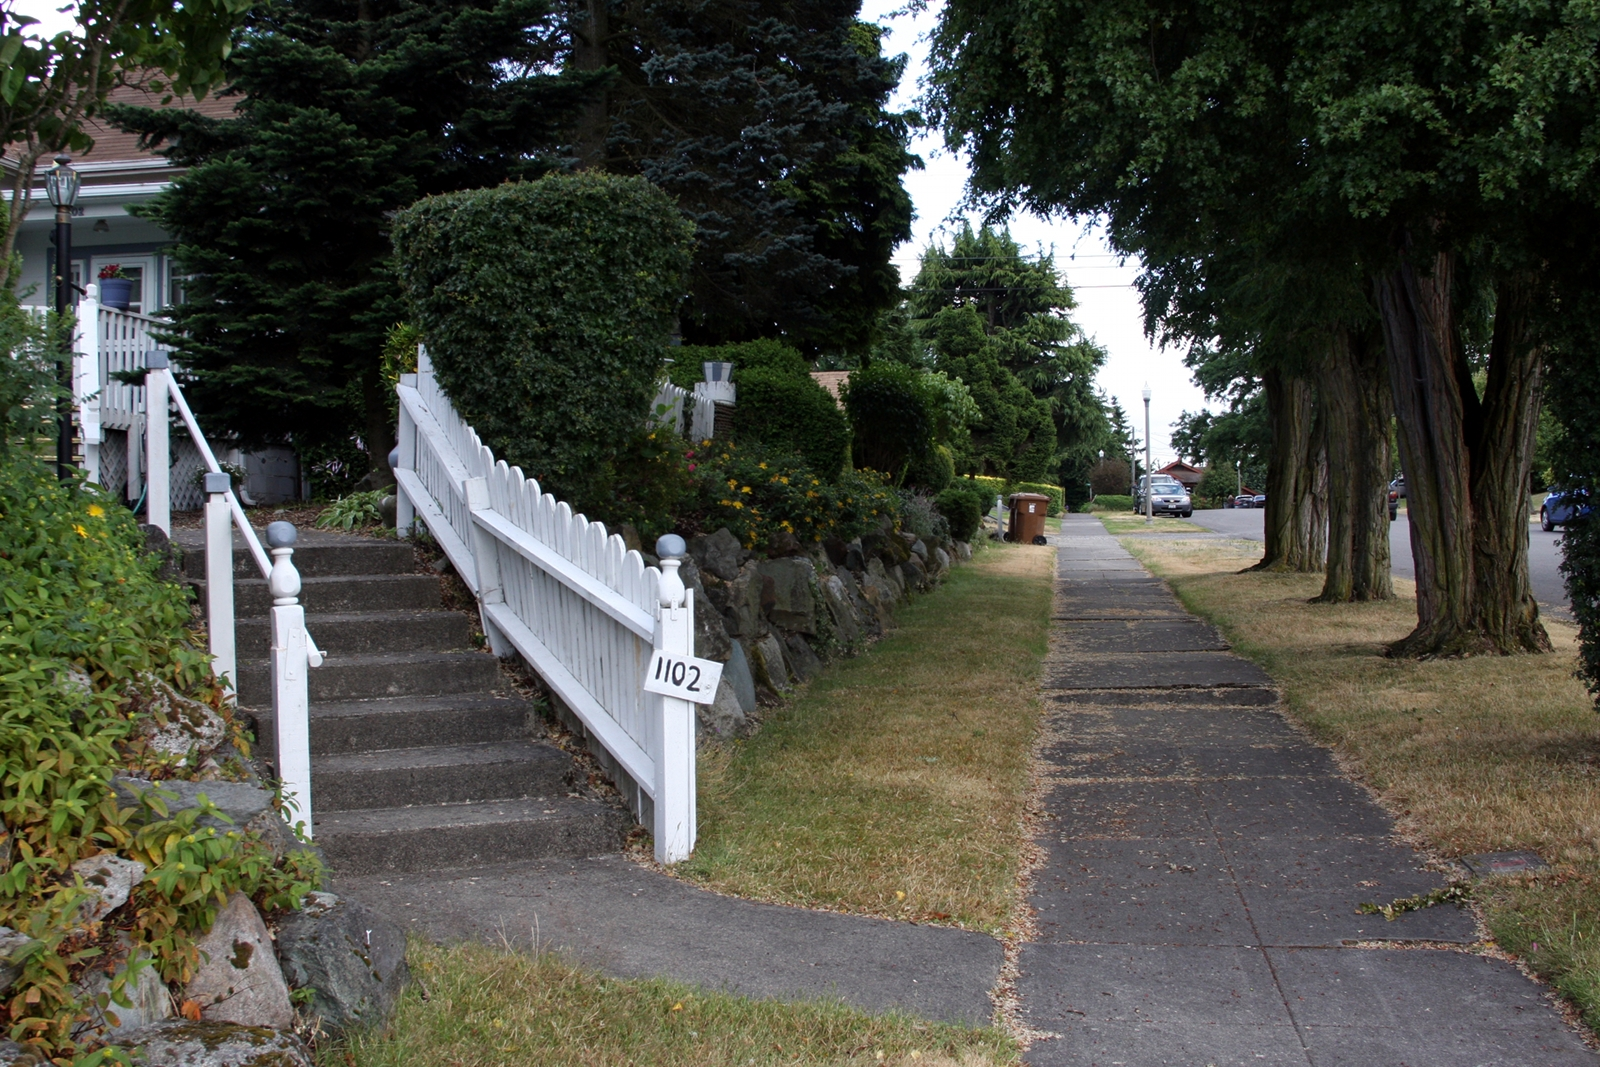 Like many of the neighborhoods in Tacoma, McKinley is filled with charming older homes.